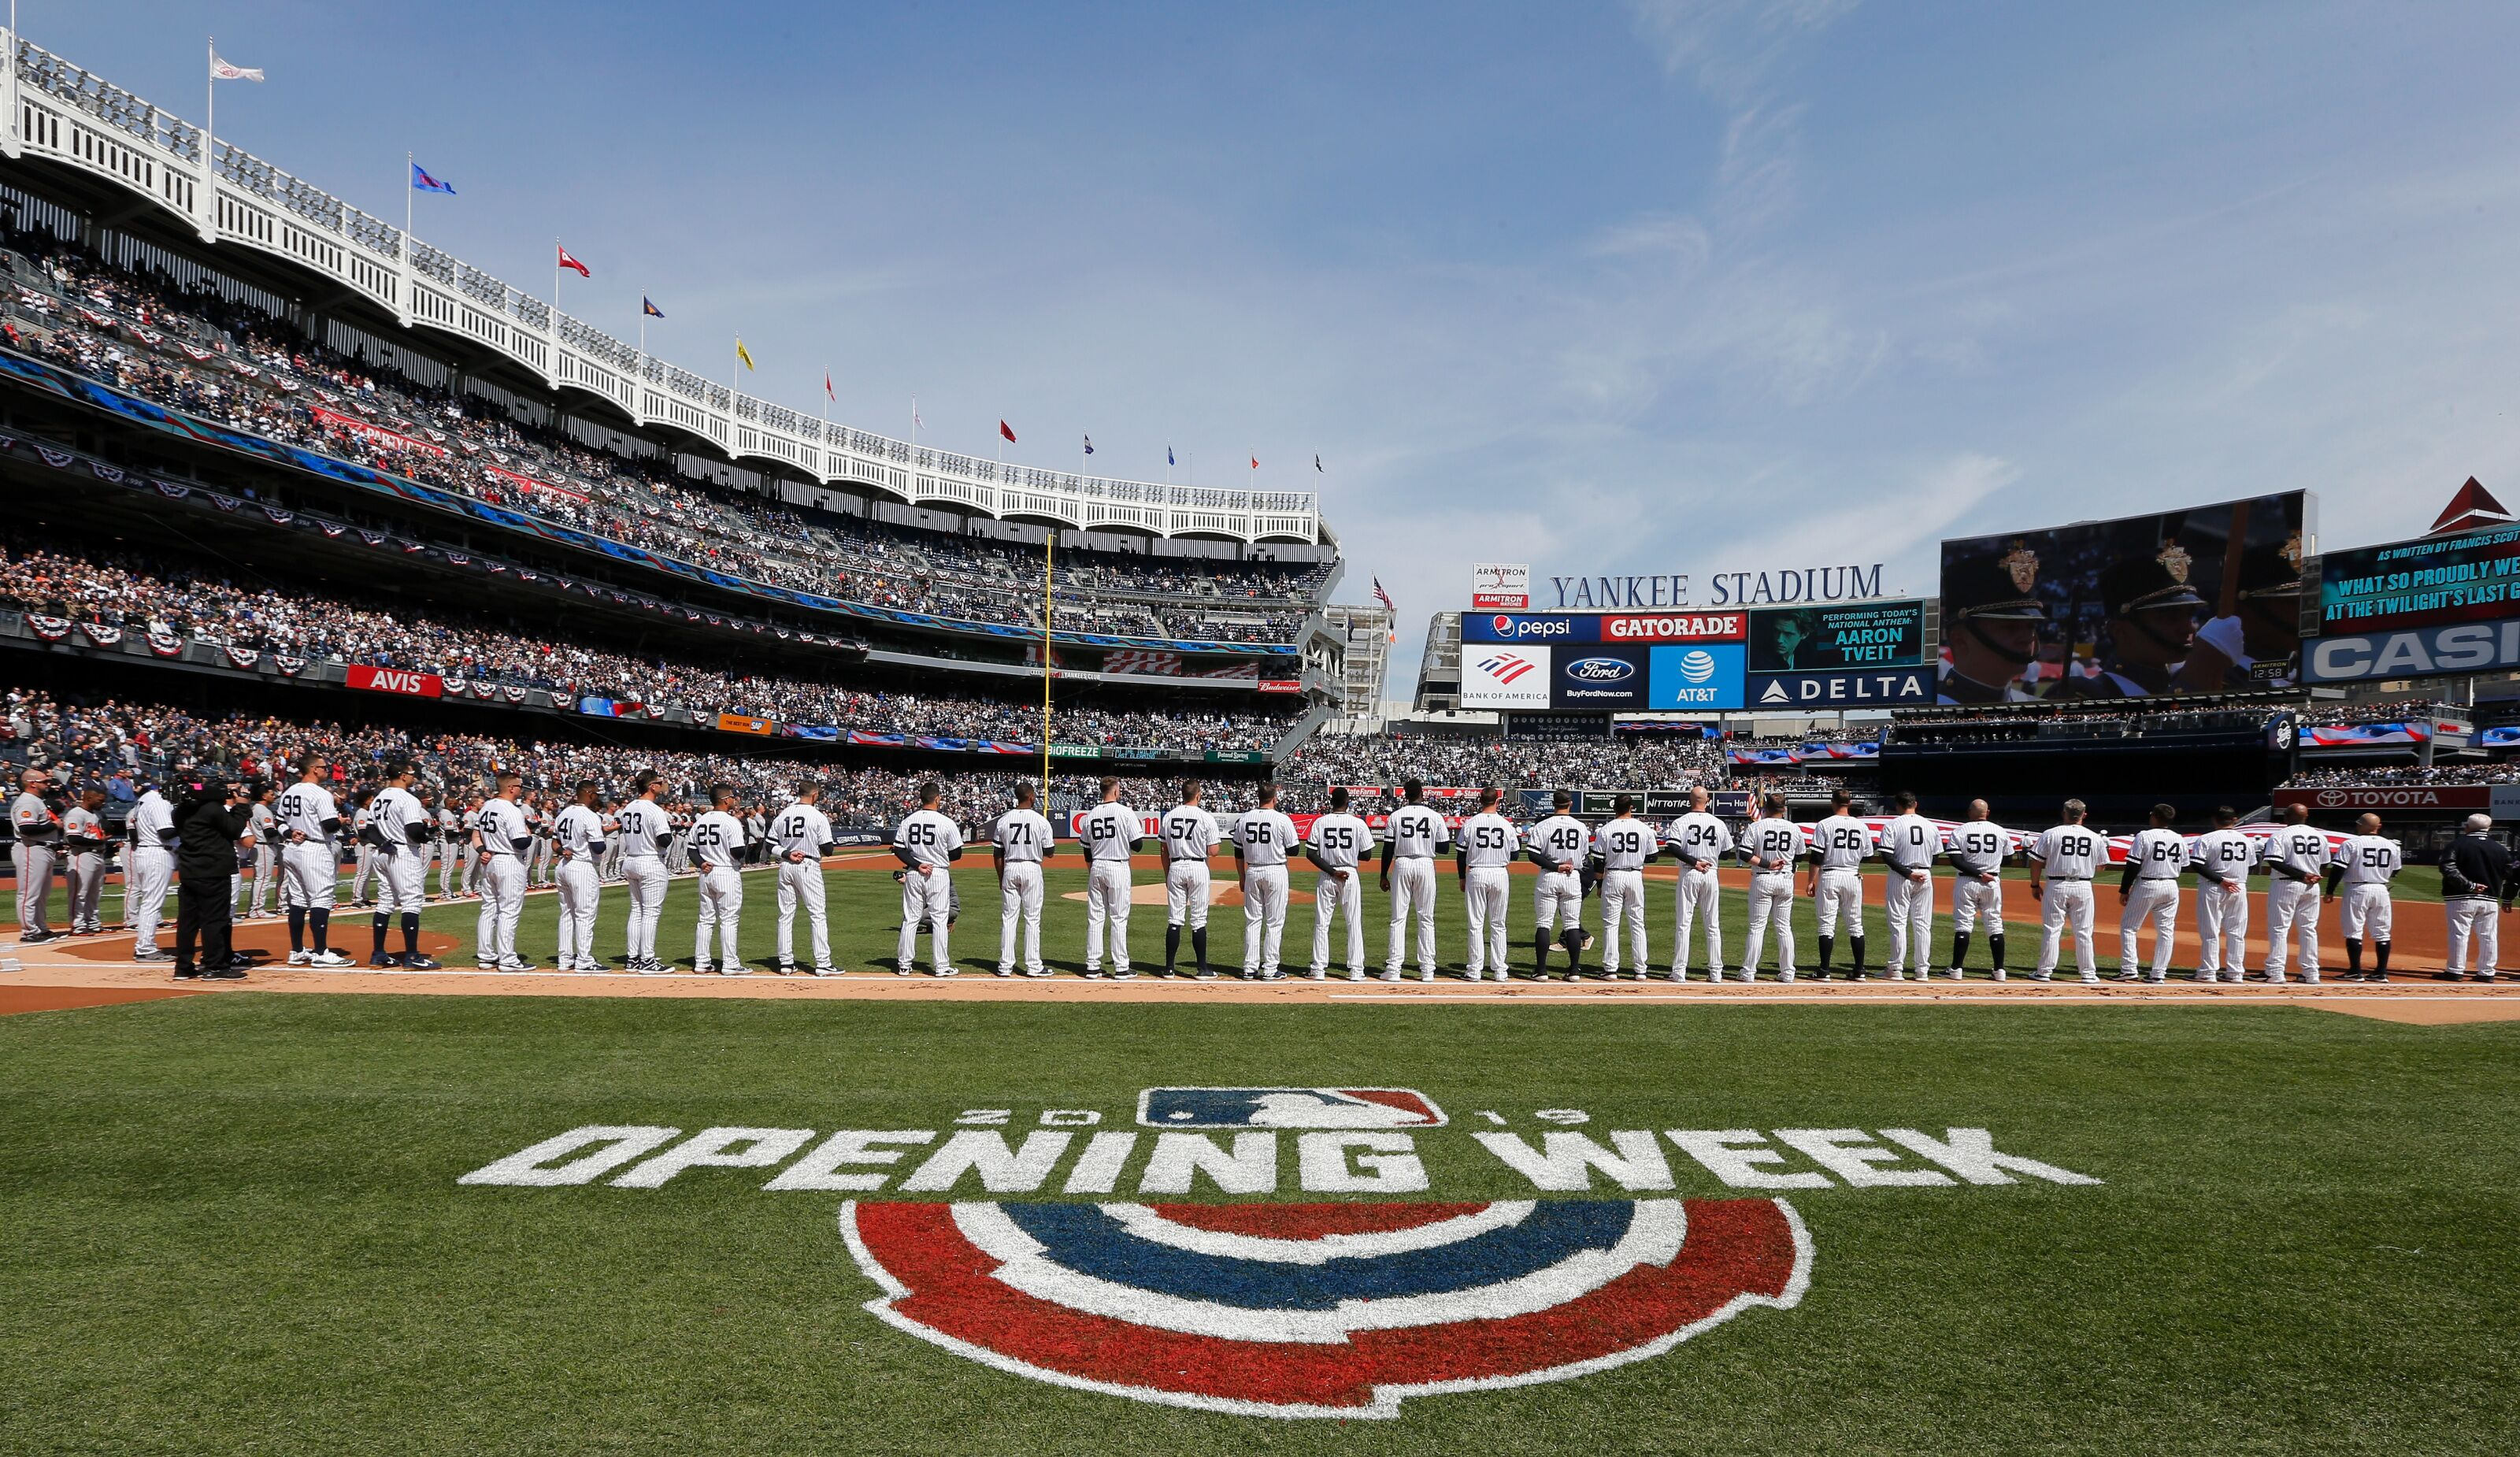 Yankees: A look at the schedule for the first month of the regular season